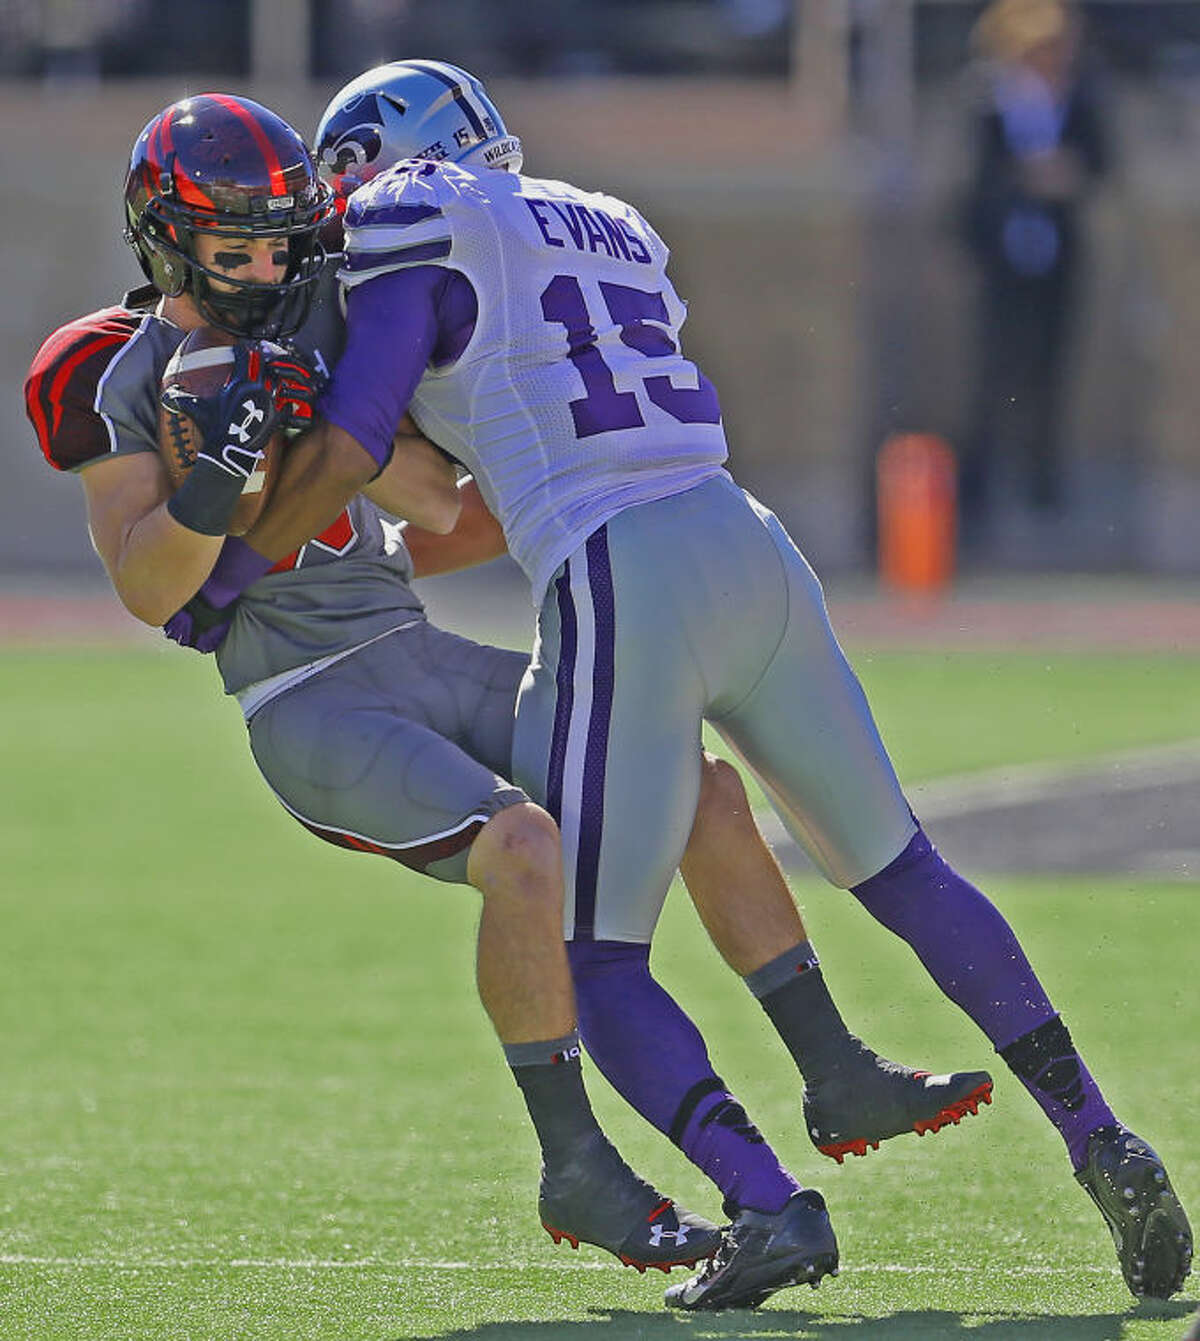 Texas Tech receiver Jordan Davis (85) is decleated by Kansas State defensive back Randall Evans (15) in Saturday Big XII action at Jones AT & T stadium in Lubbock.